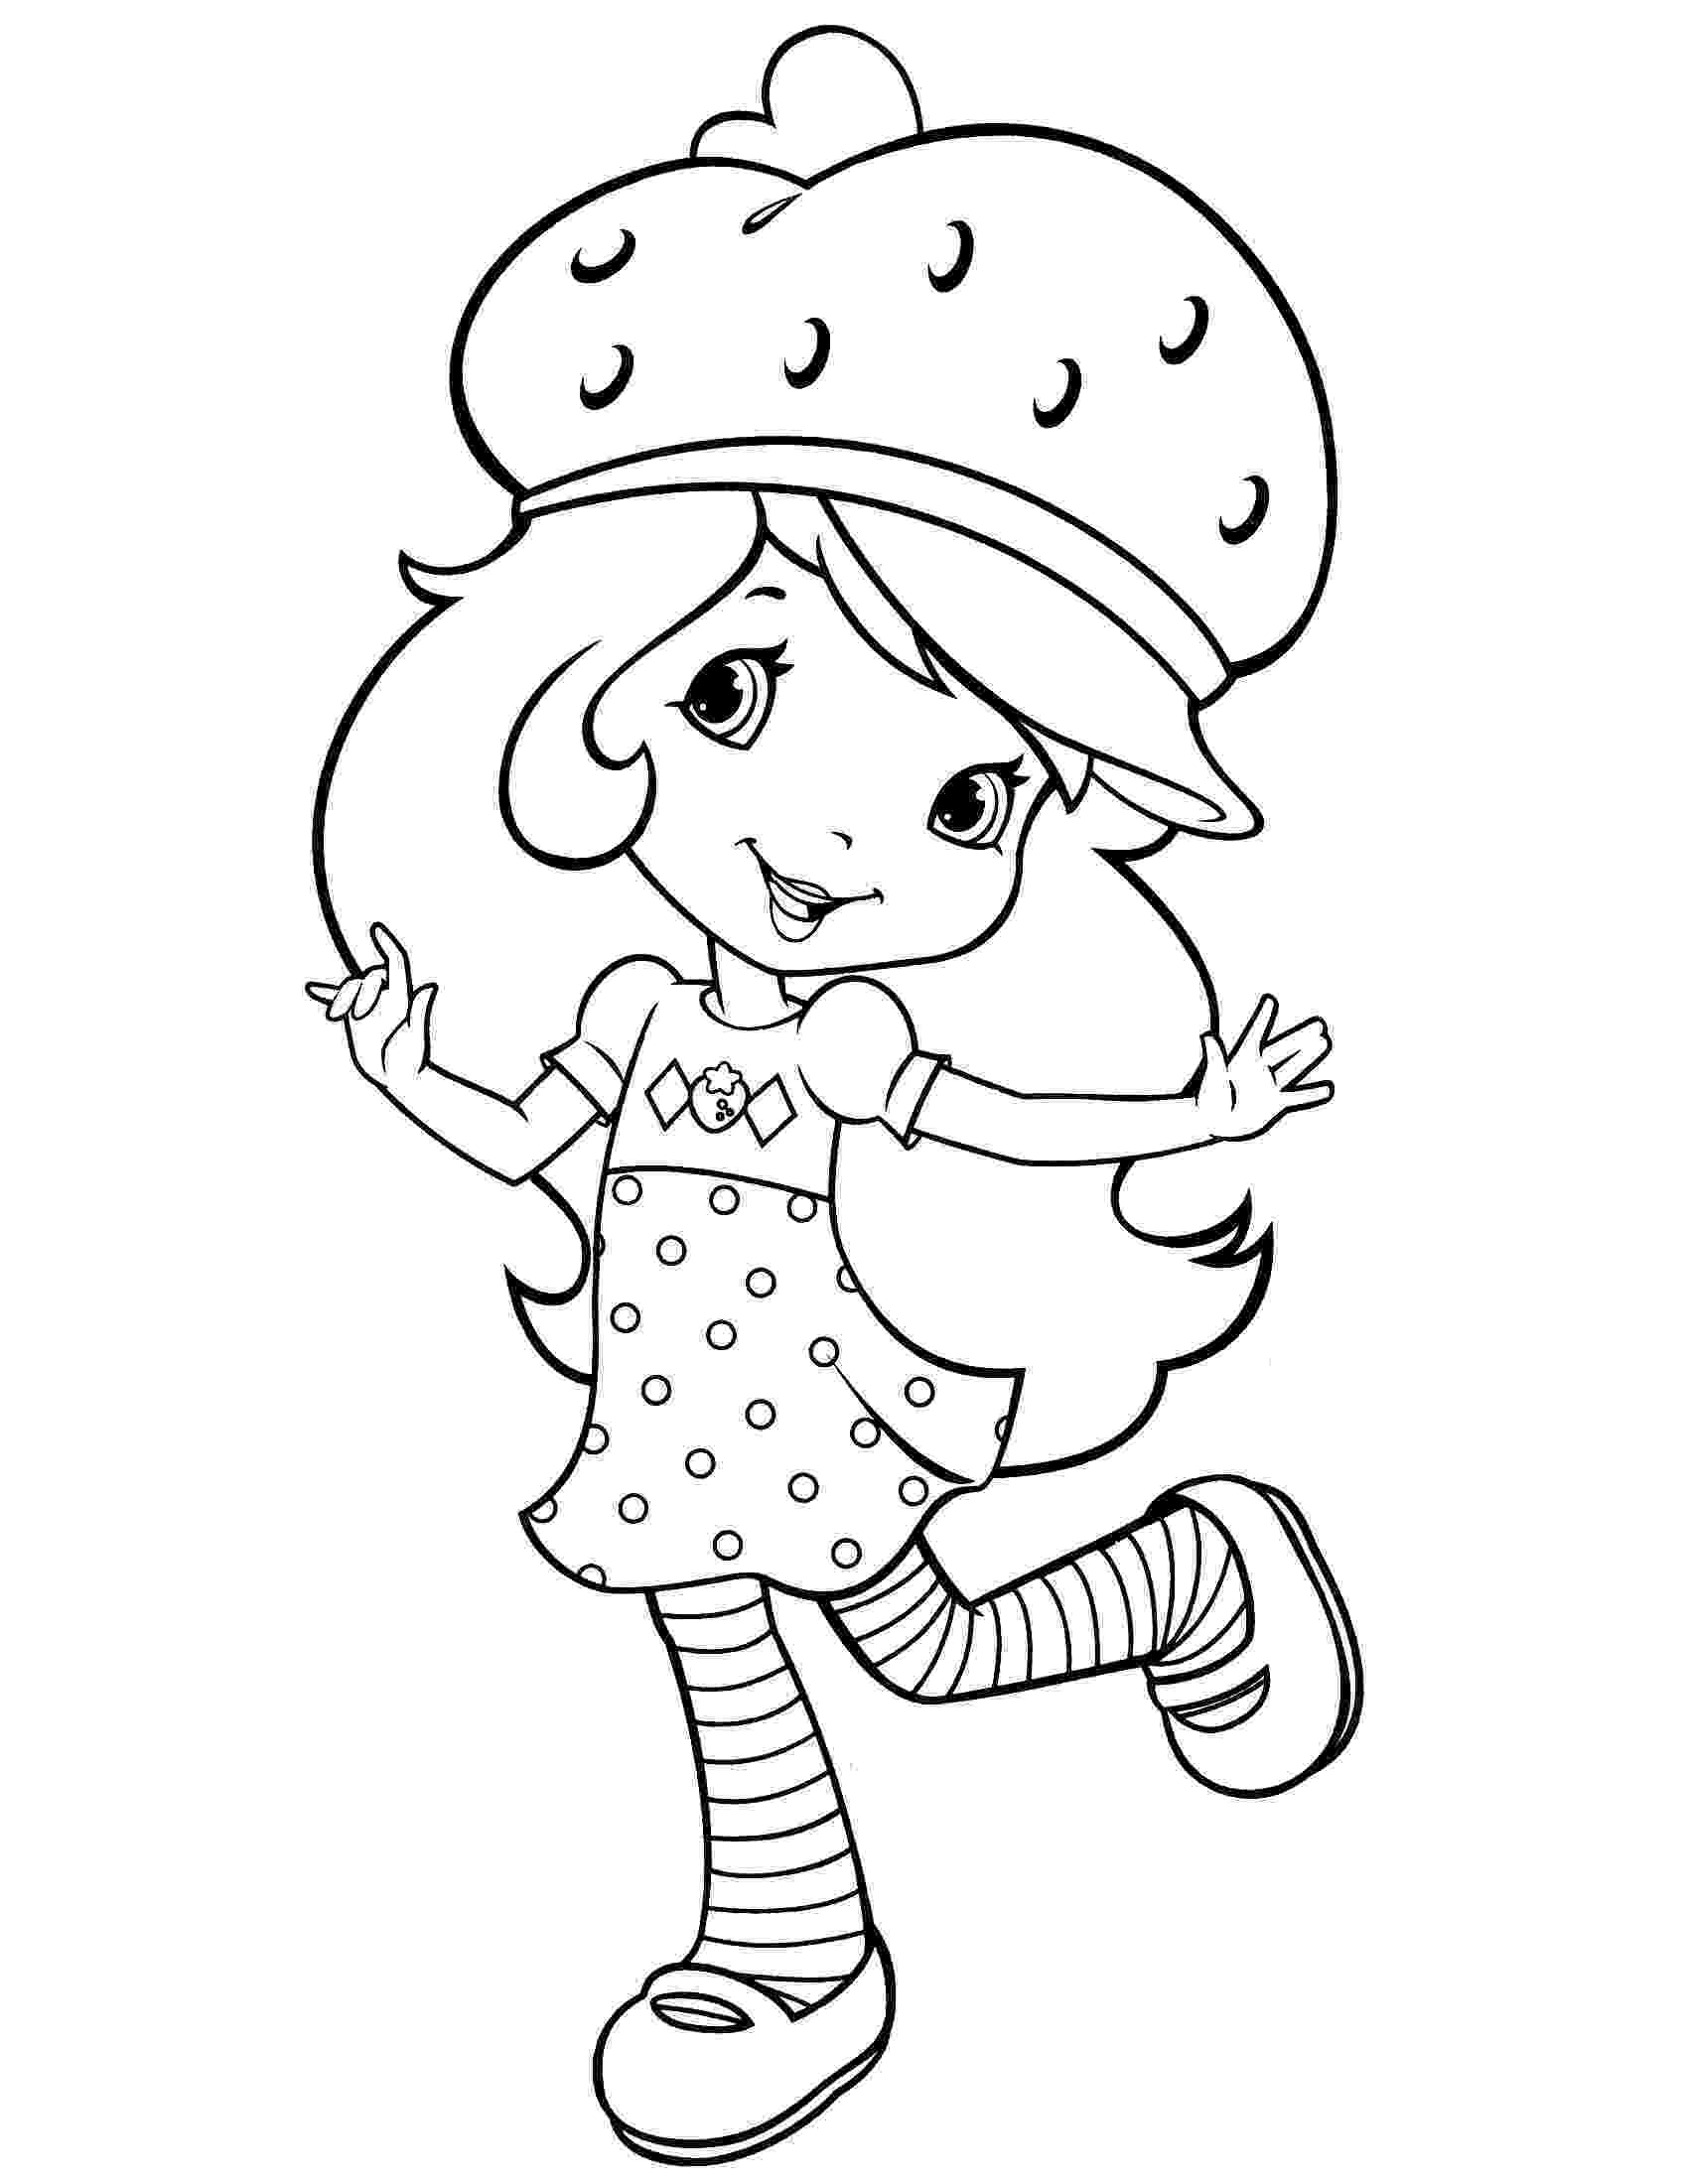 strawberry shortcake printable coloring pages free printable strawberry shortcake coloring pages for kids pages printable shortcake strawberry coloring